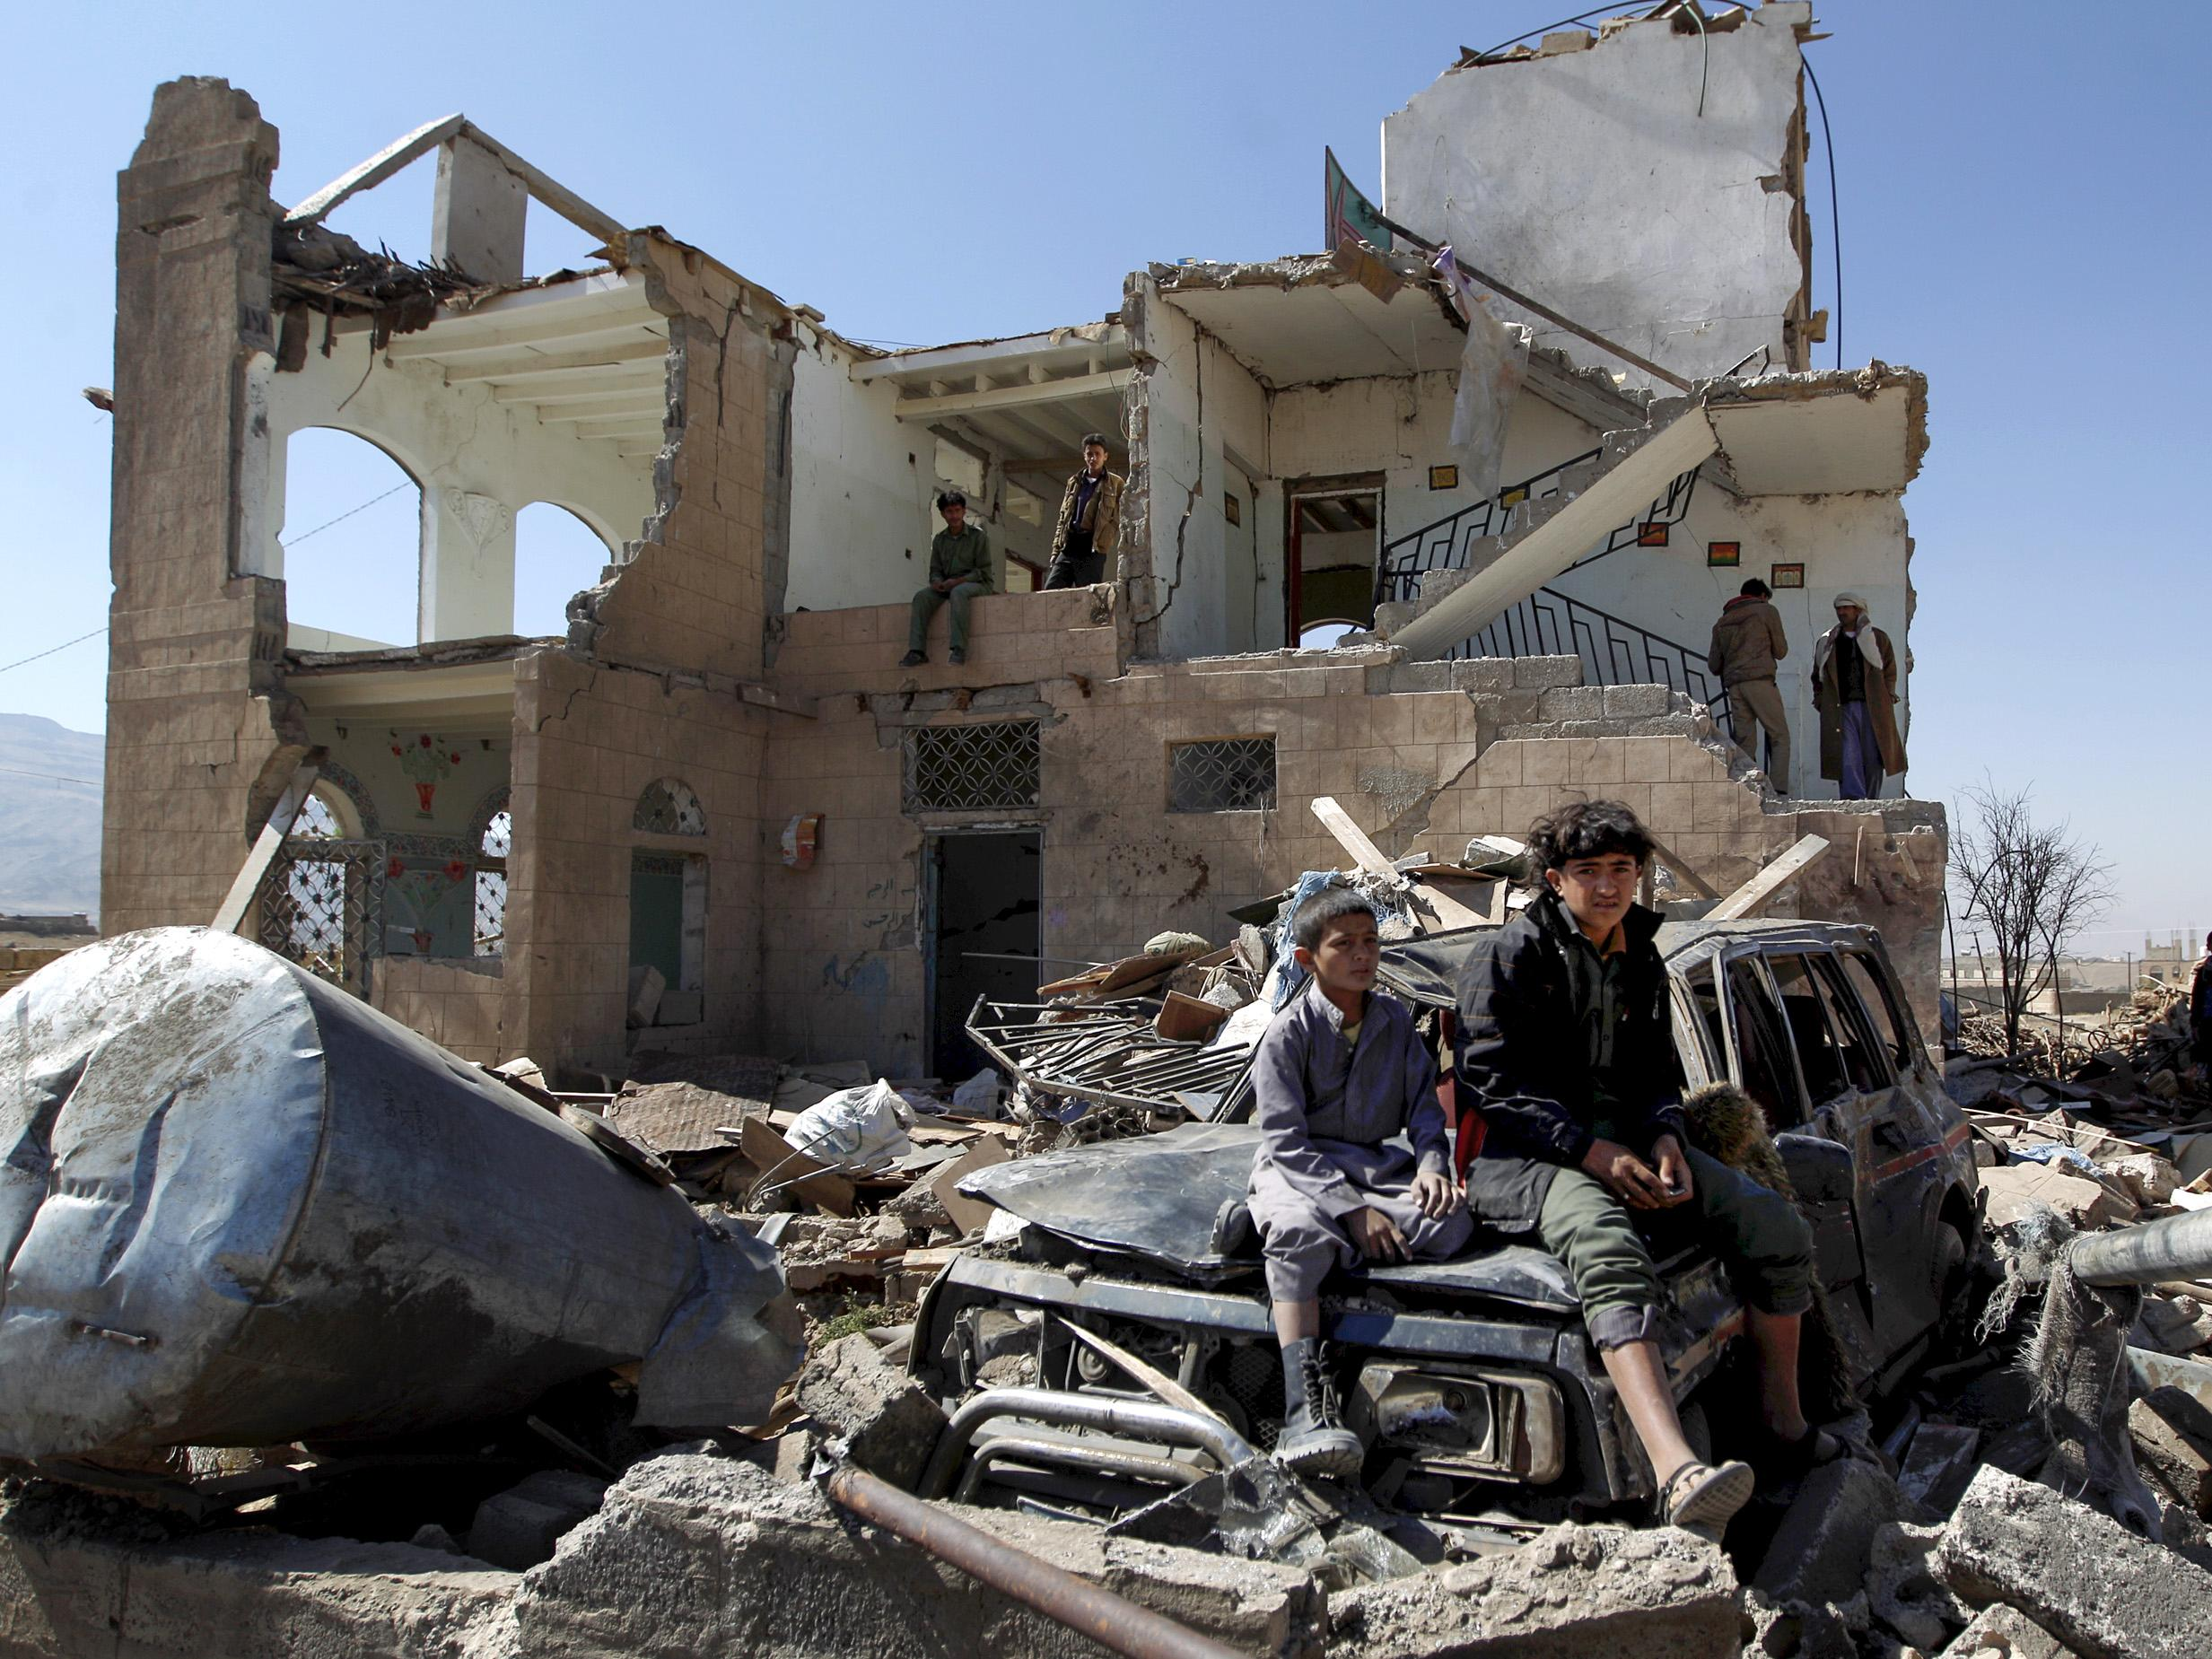 Ministry of Defence finds 'staggering violations of humanitarian law' by Saudi coalition forces in Yemen